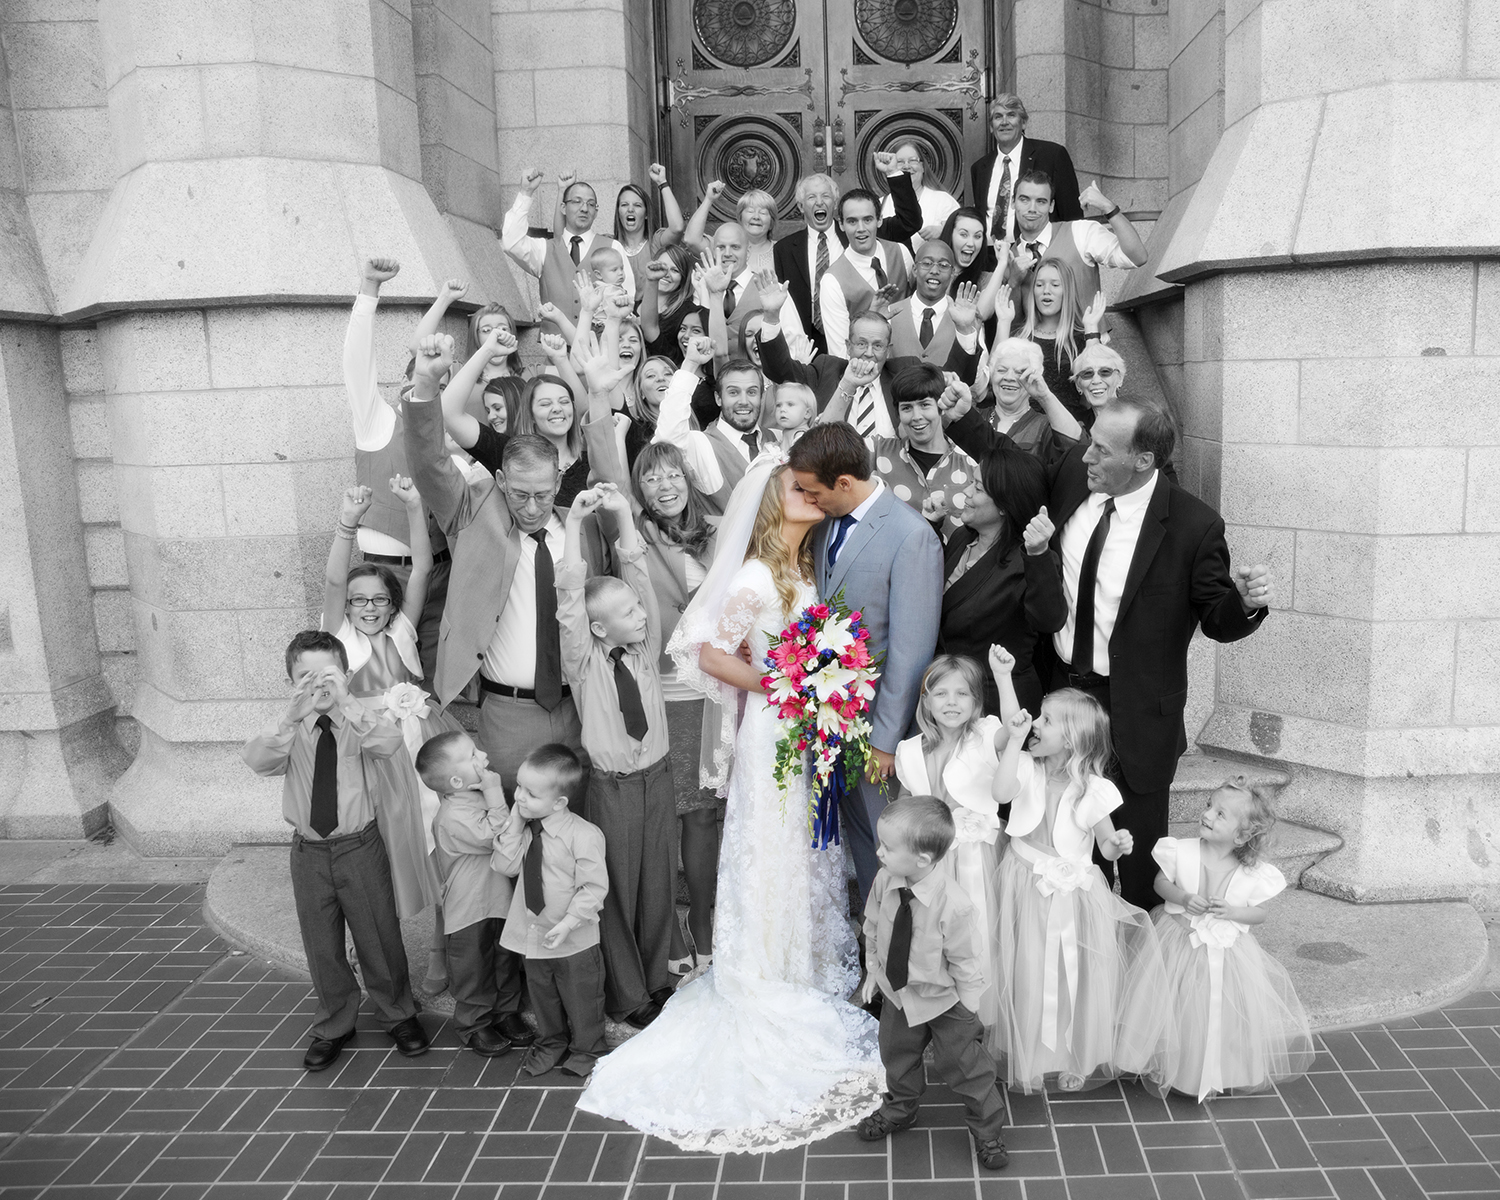 LDS Temple Weddings B&W color kiss SLC